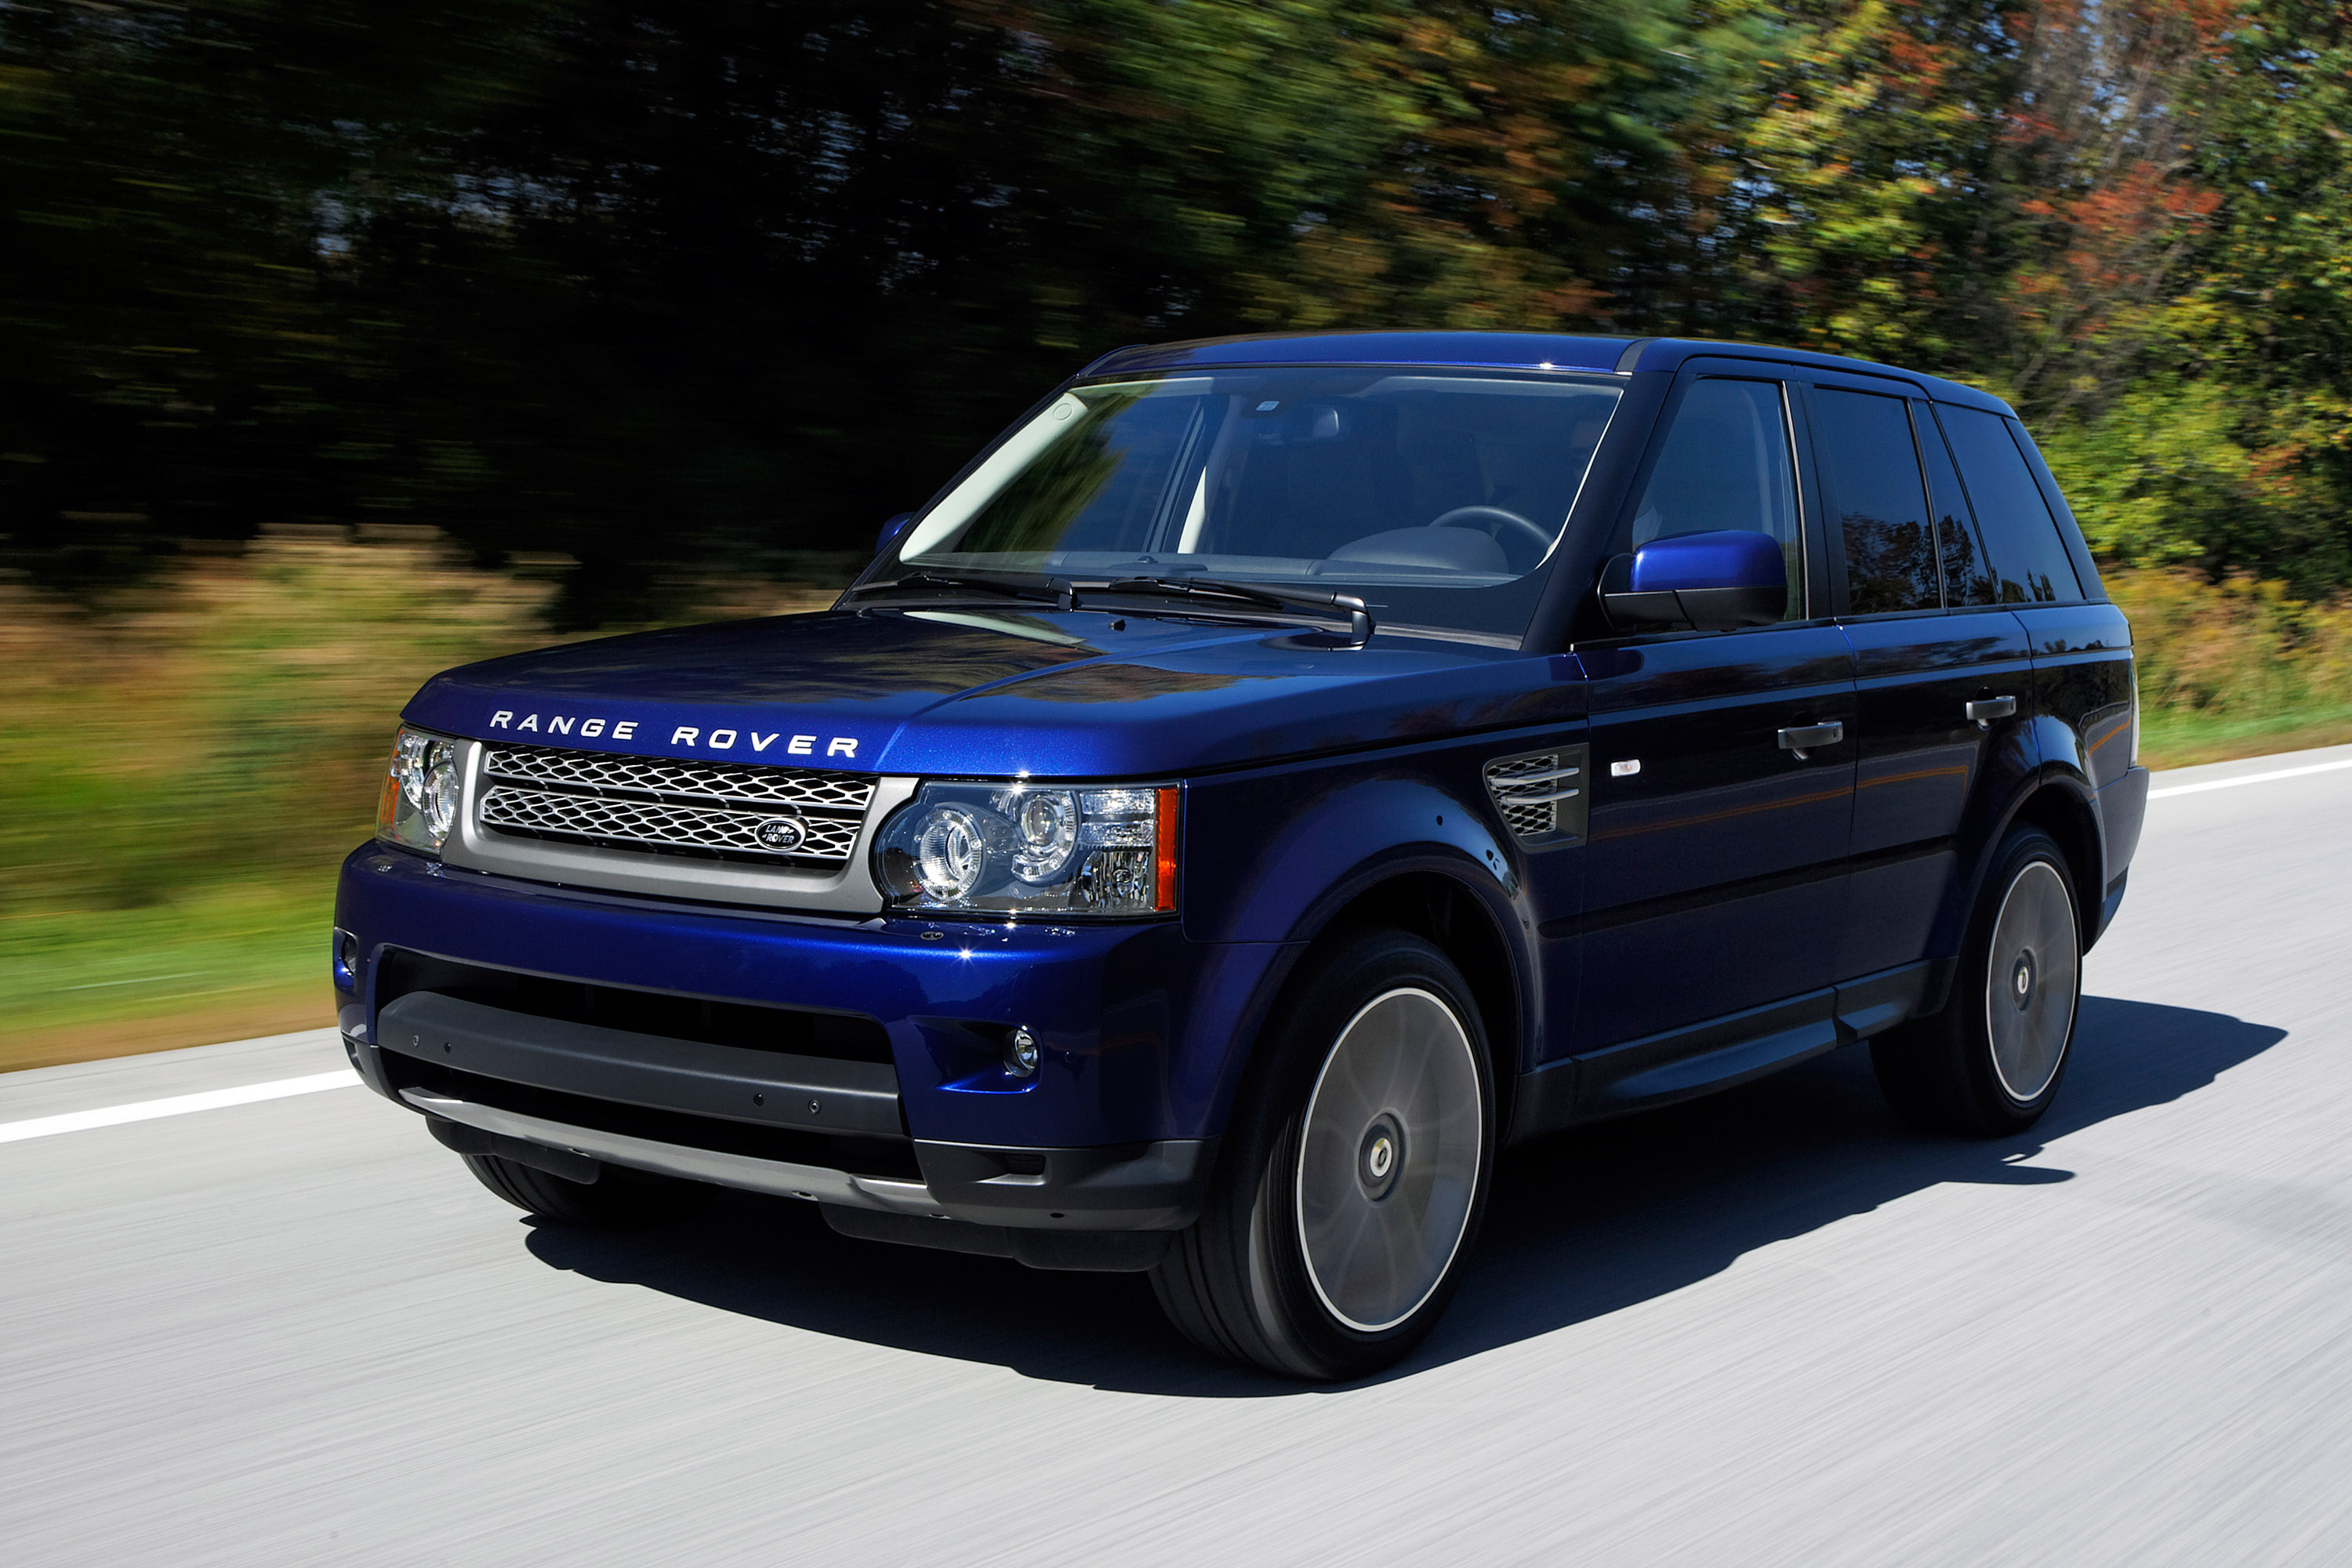 2010 Range Rover Sport Autobiography Limited Edition